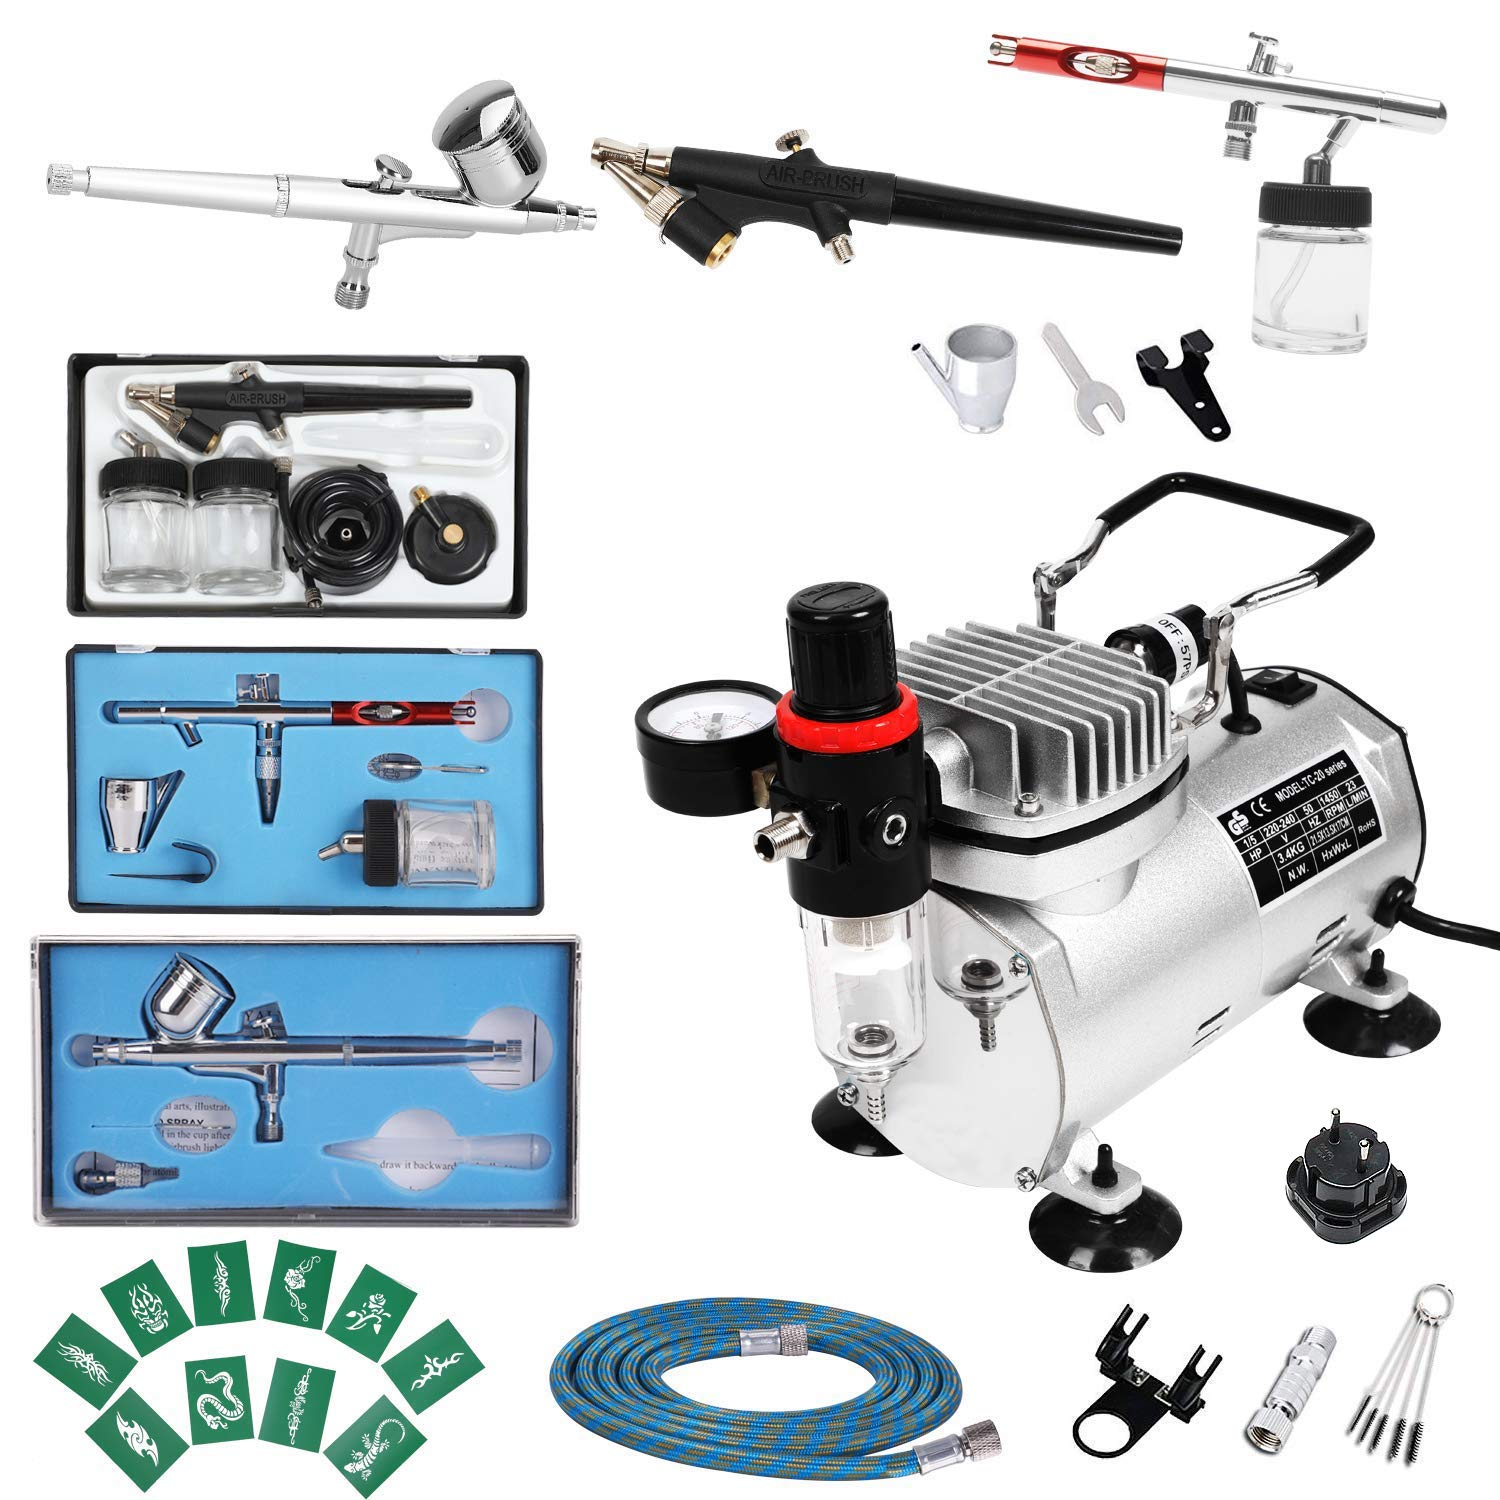 Display4top 1//5 HP Mehrzweck-Airbrush-Kompressor-Kit-System 6 Air Hose /& Airbrush Holder mit 2 Airbrushes: 0.3MMDual Action Gravity Feed 1 Airbrushes: Einfachwirkende 0.8mm Siphon Feed